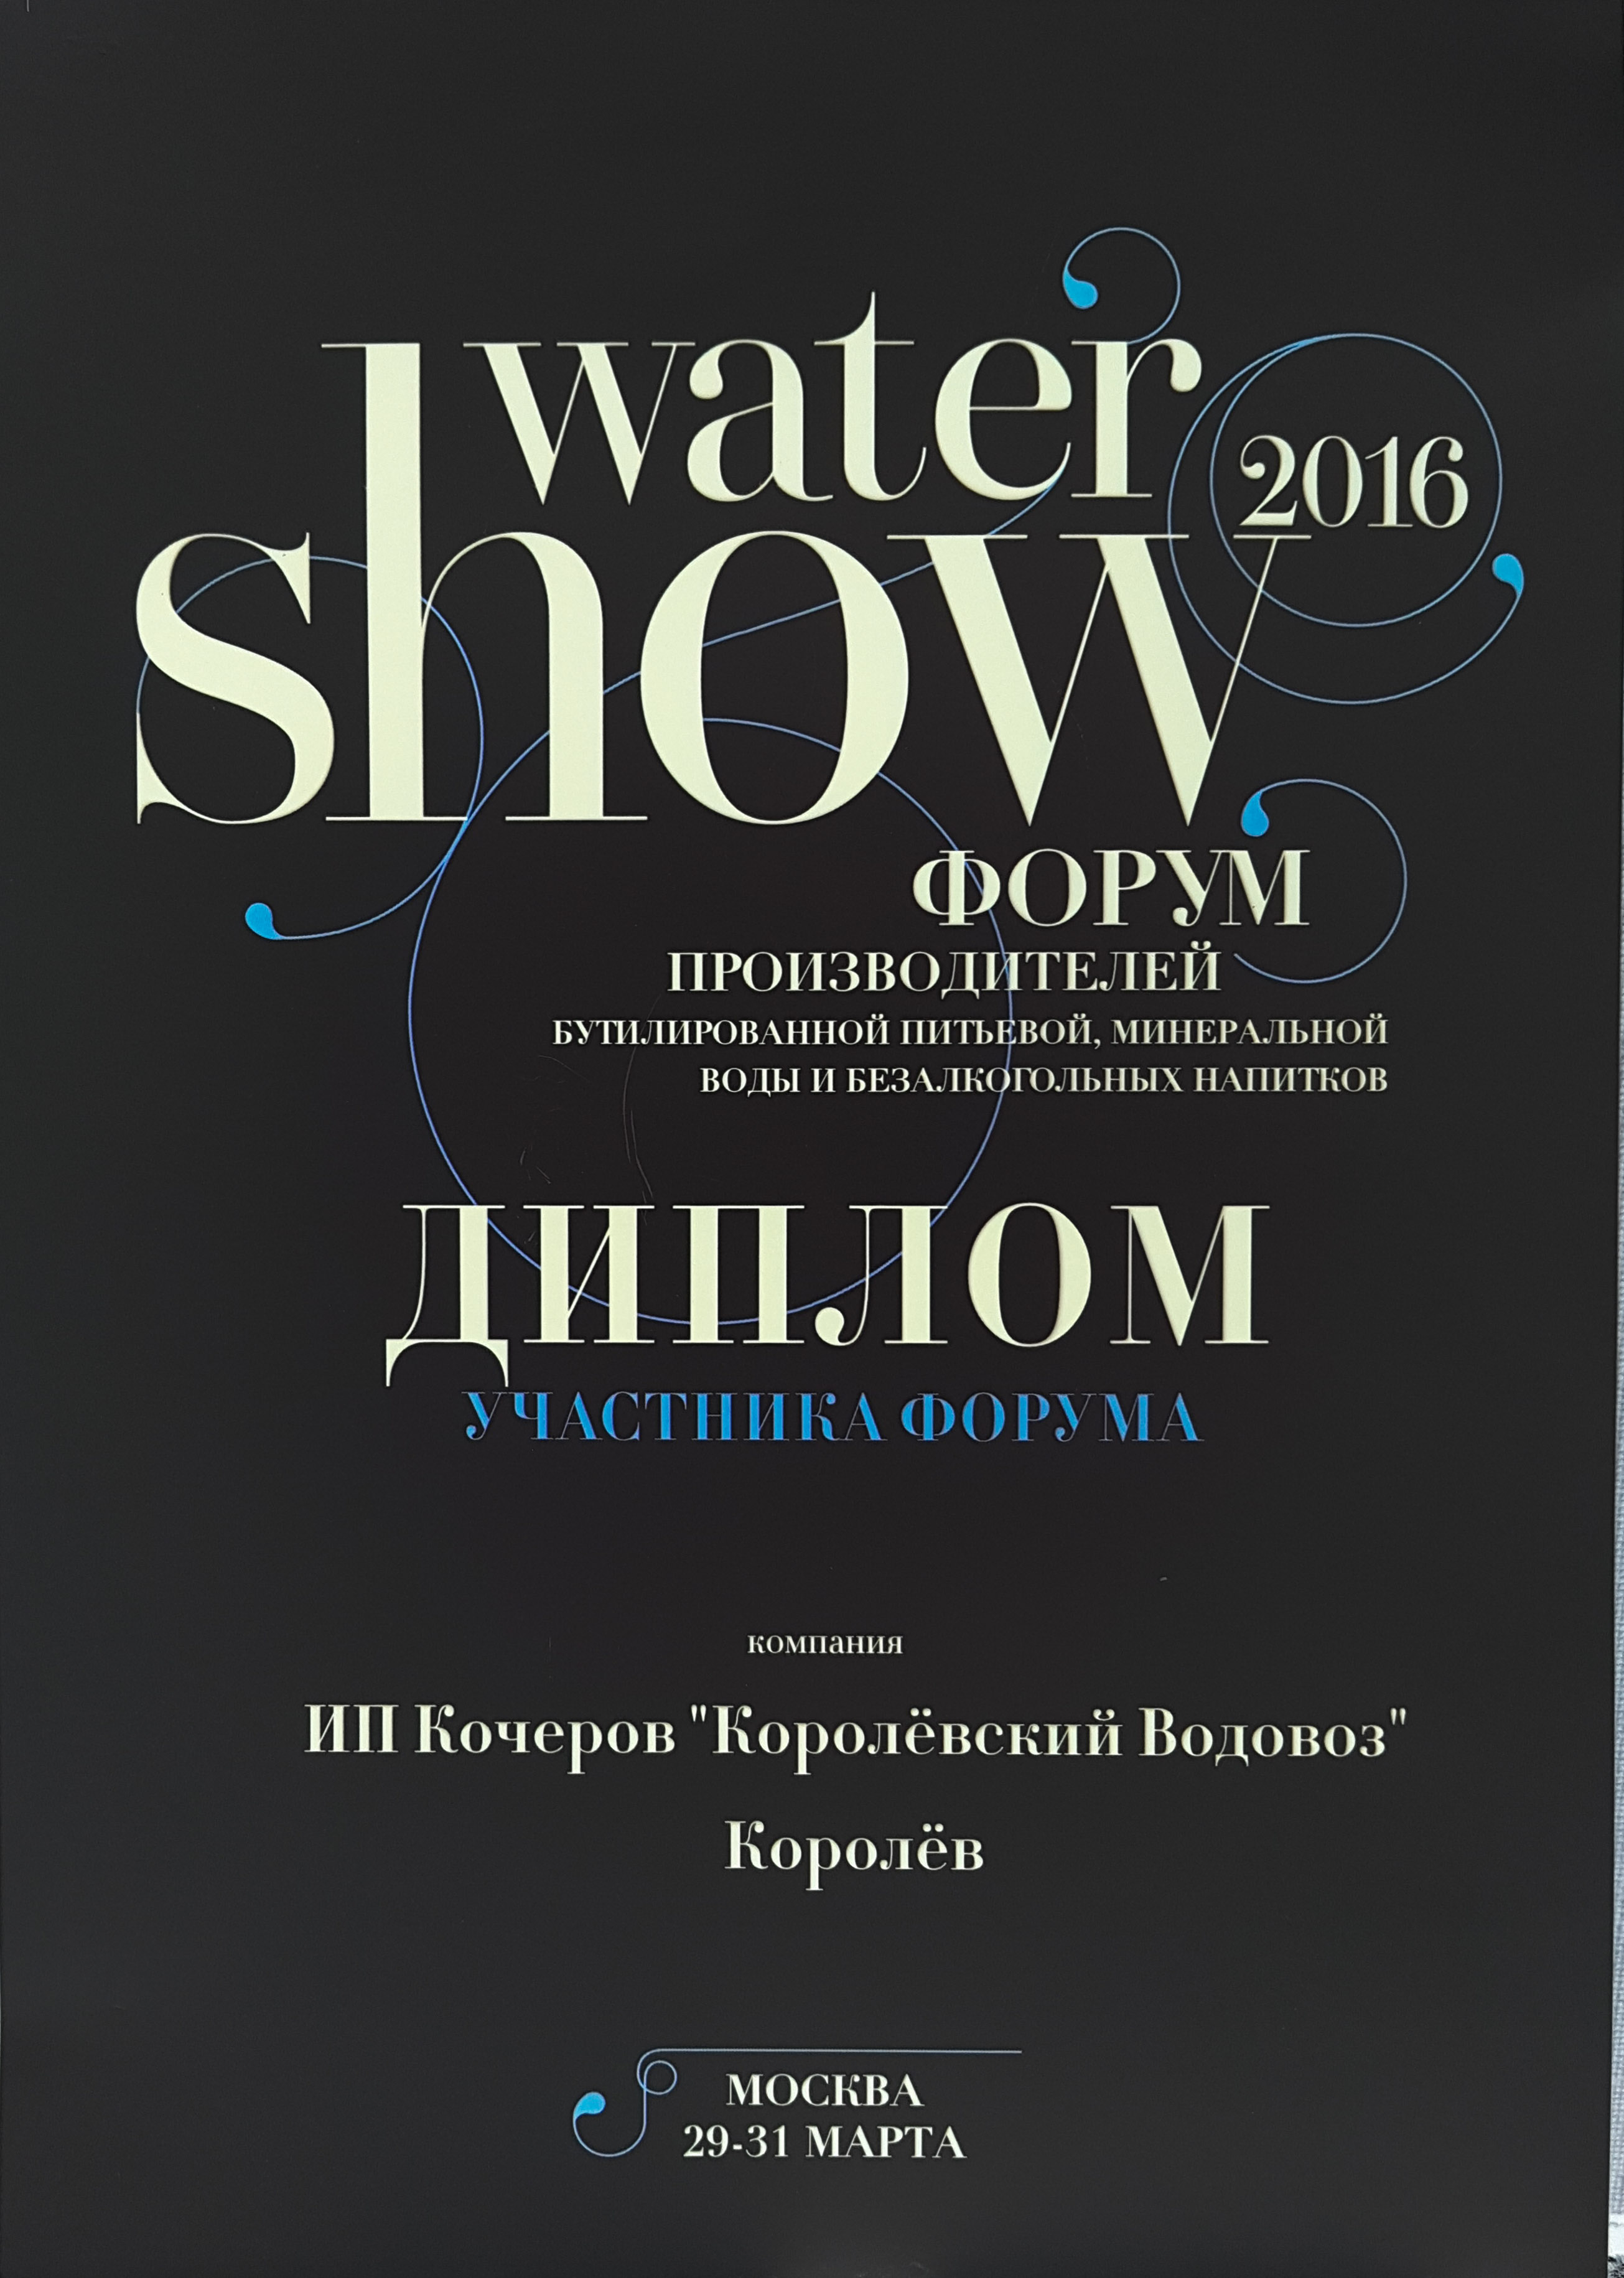 diplom watershow